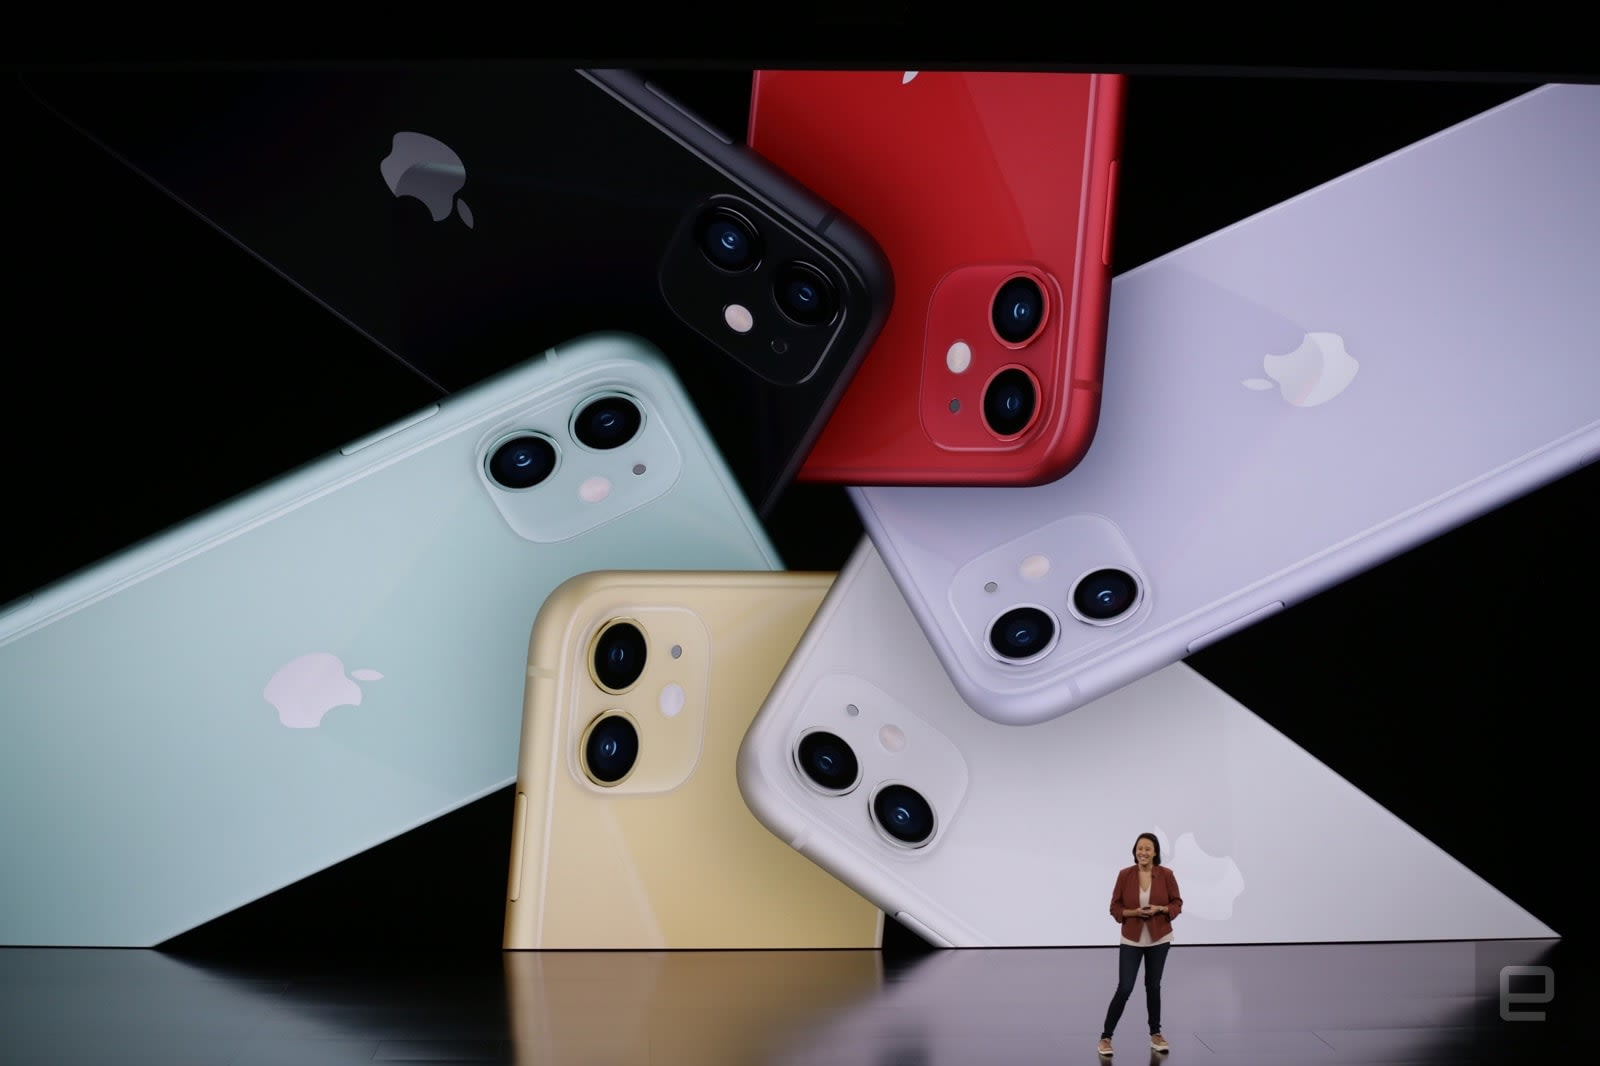 The iPhone 11 is Apple's colorful new handset for the masses